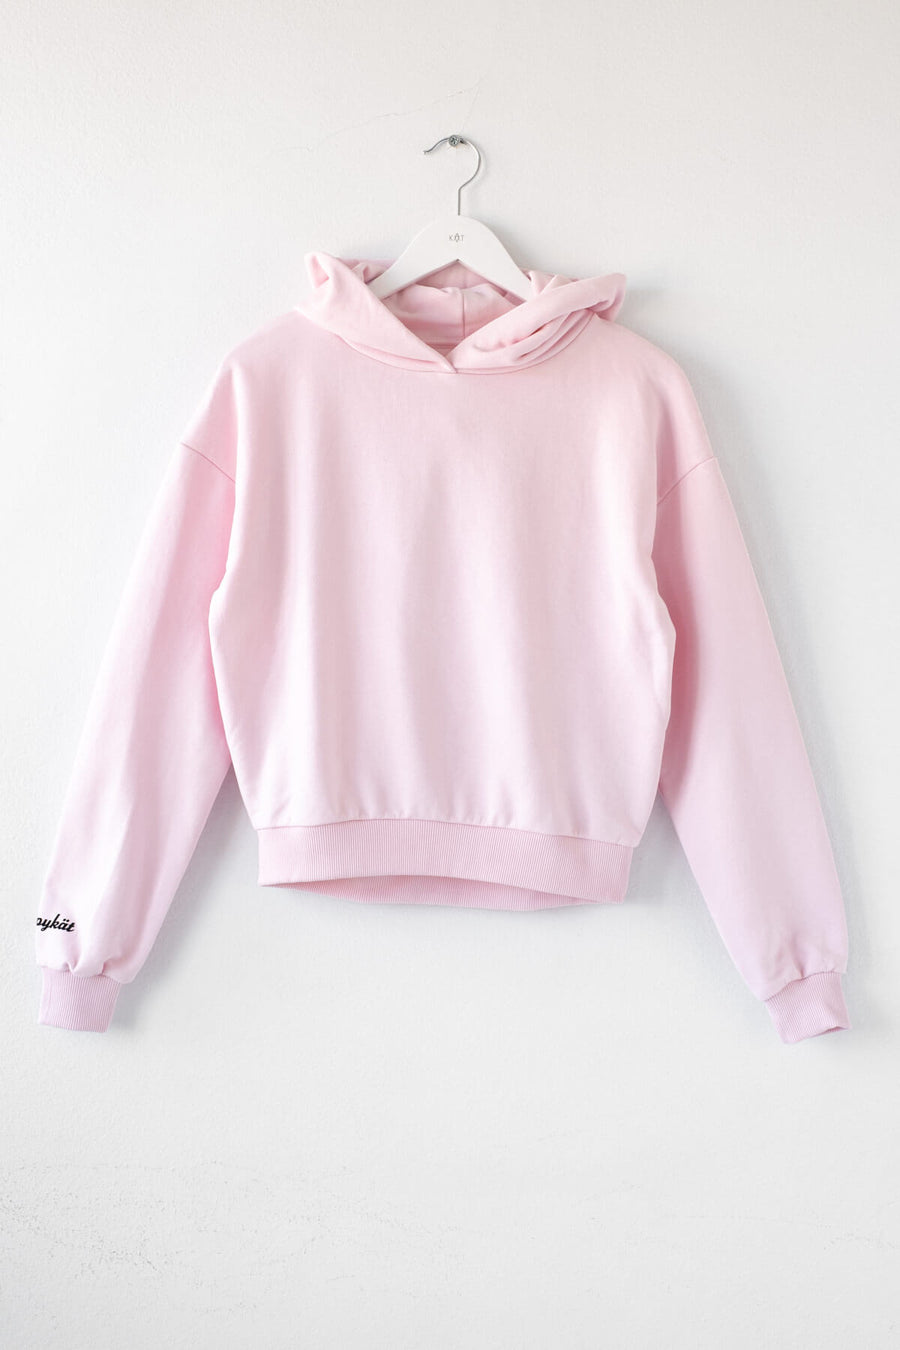 KÄT COPYKÄT cropped hoodie in light pink